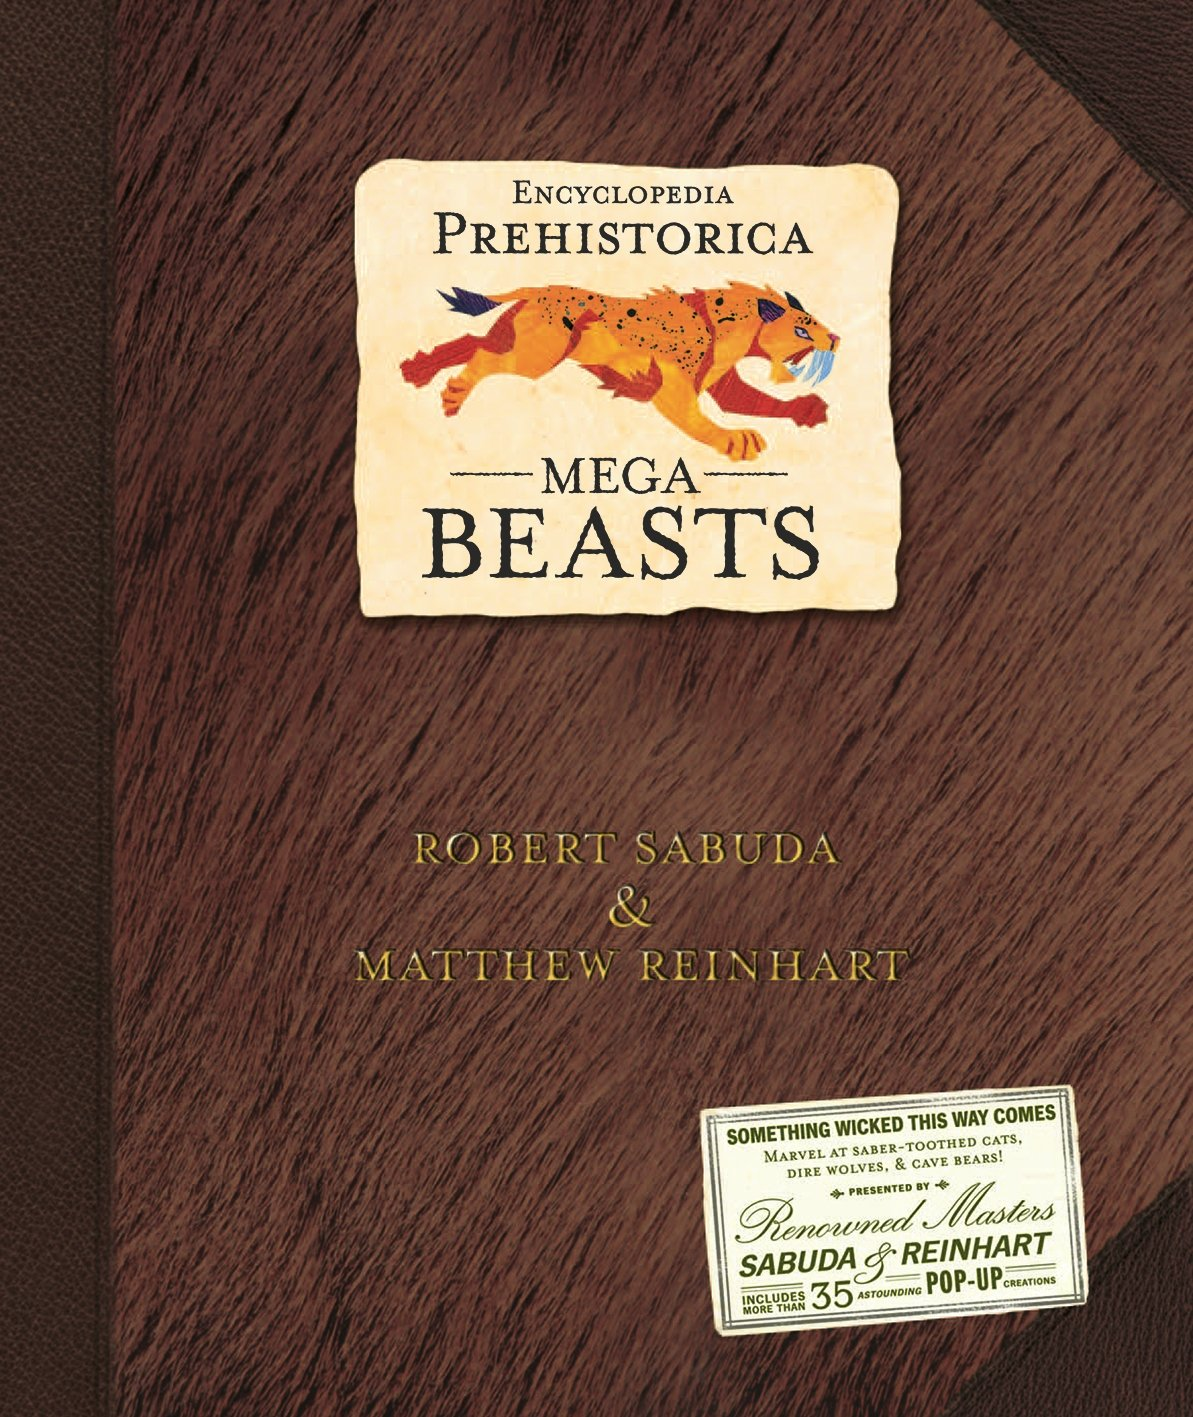 Encyclopedia Prehistorica Mega-Beasts